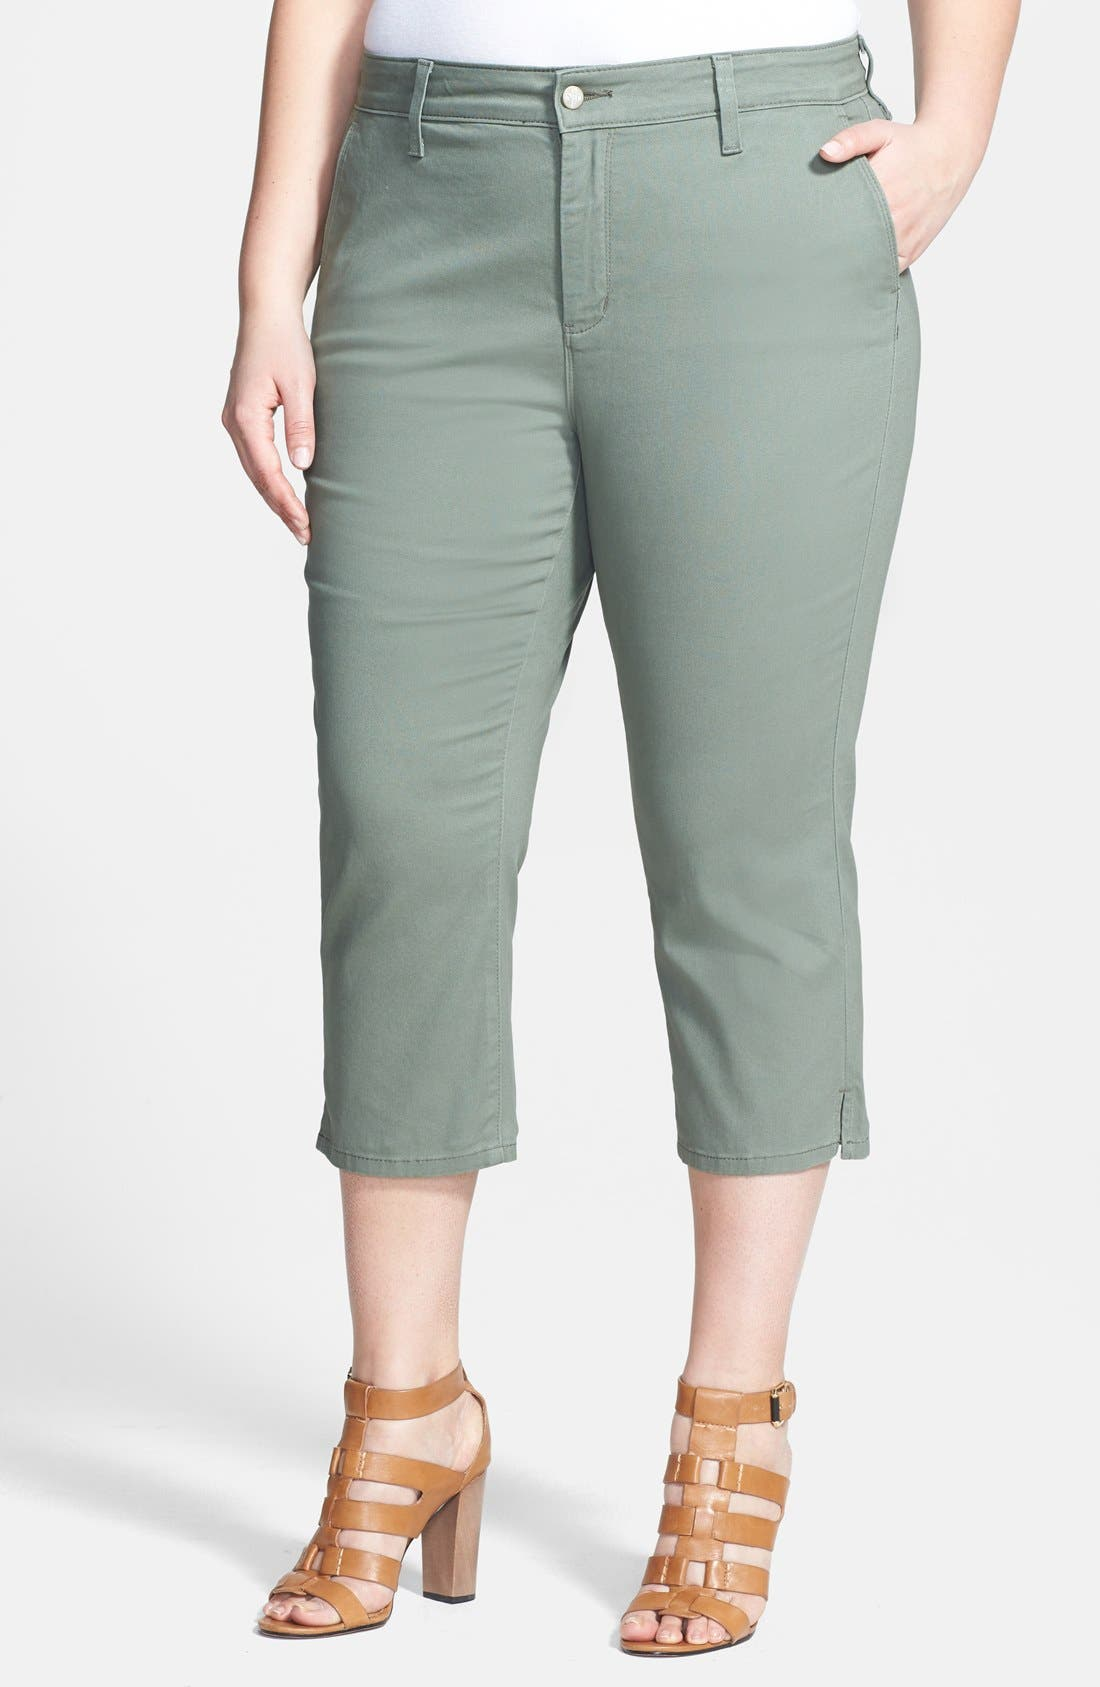 Alternate Image 1 Selected - NYDJ 'Amara' Crop Stretch Cotton Pants (Plus Size)